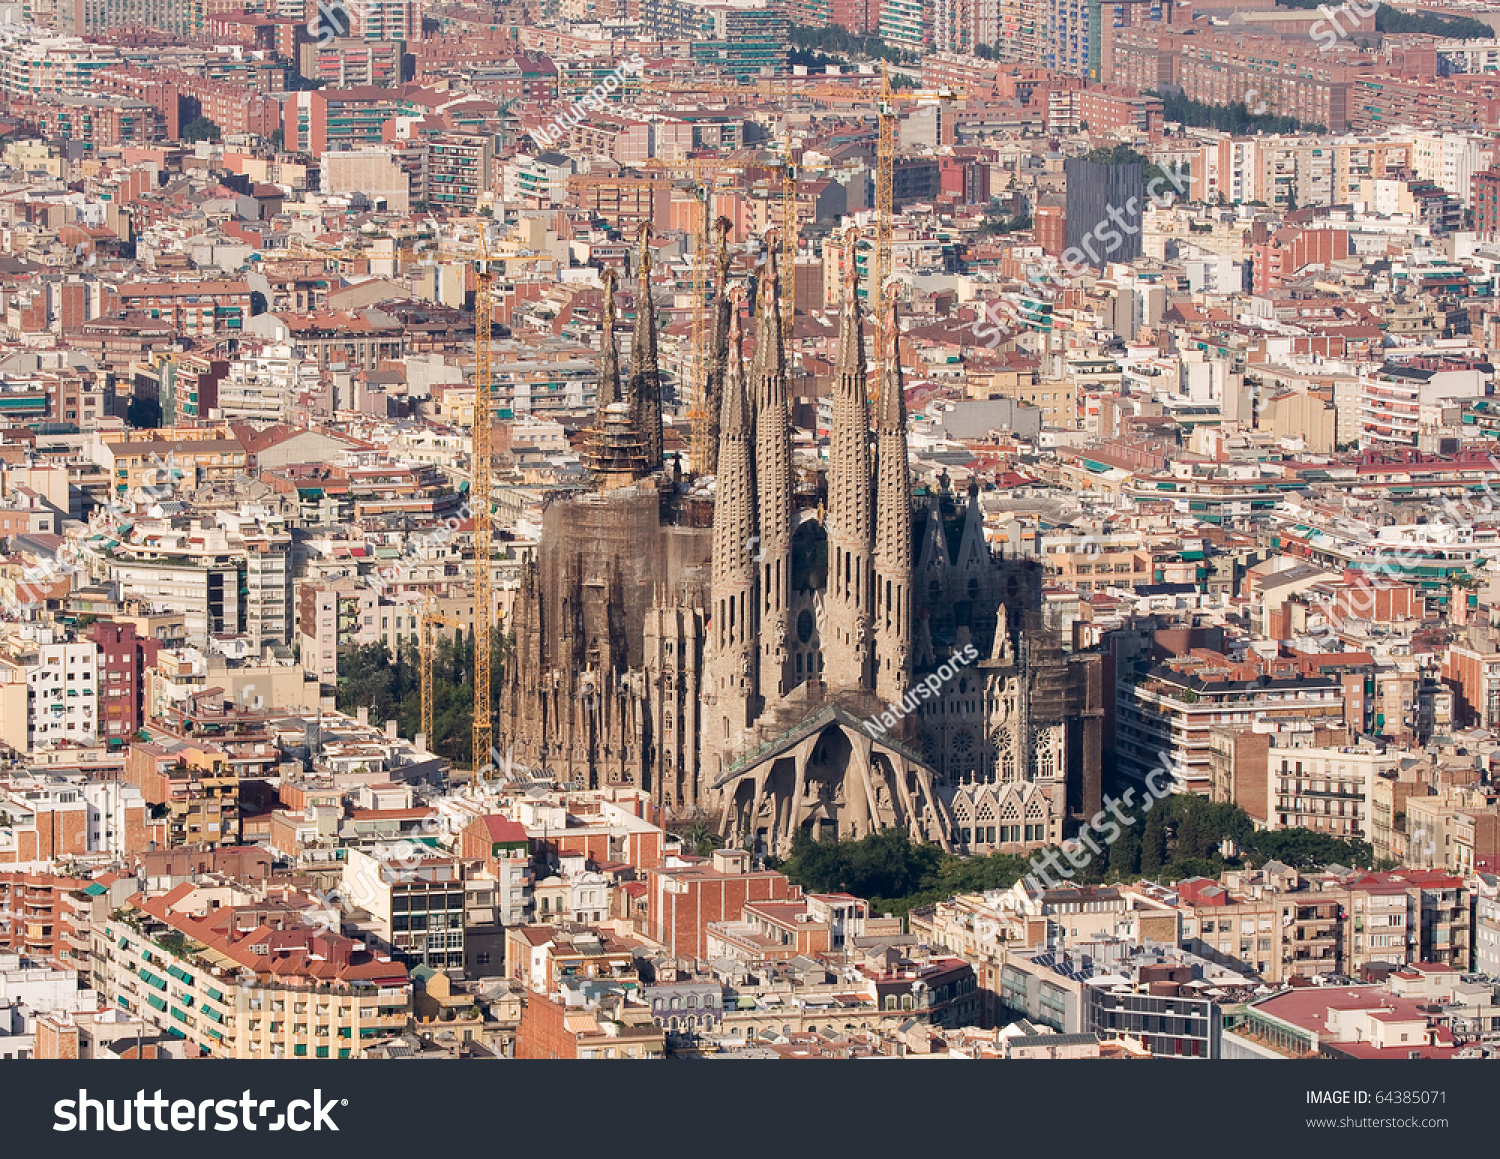 Barcelona - July 10: Aerial View Of The Sagrada Familia, Antoni GaudiS U...